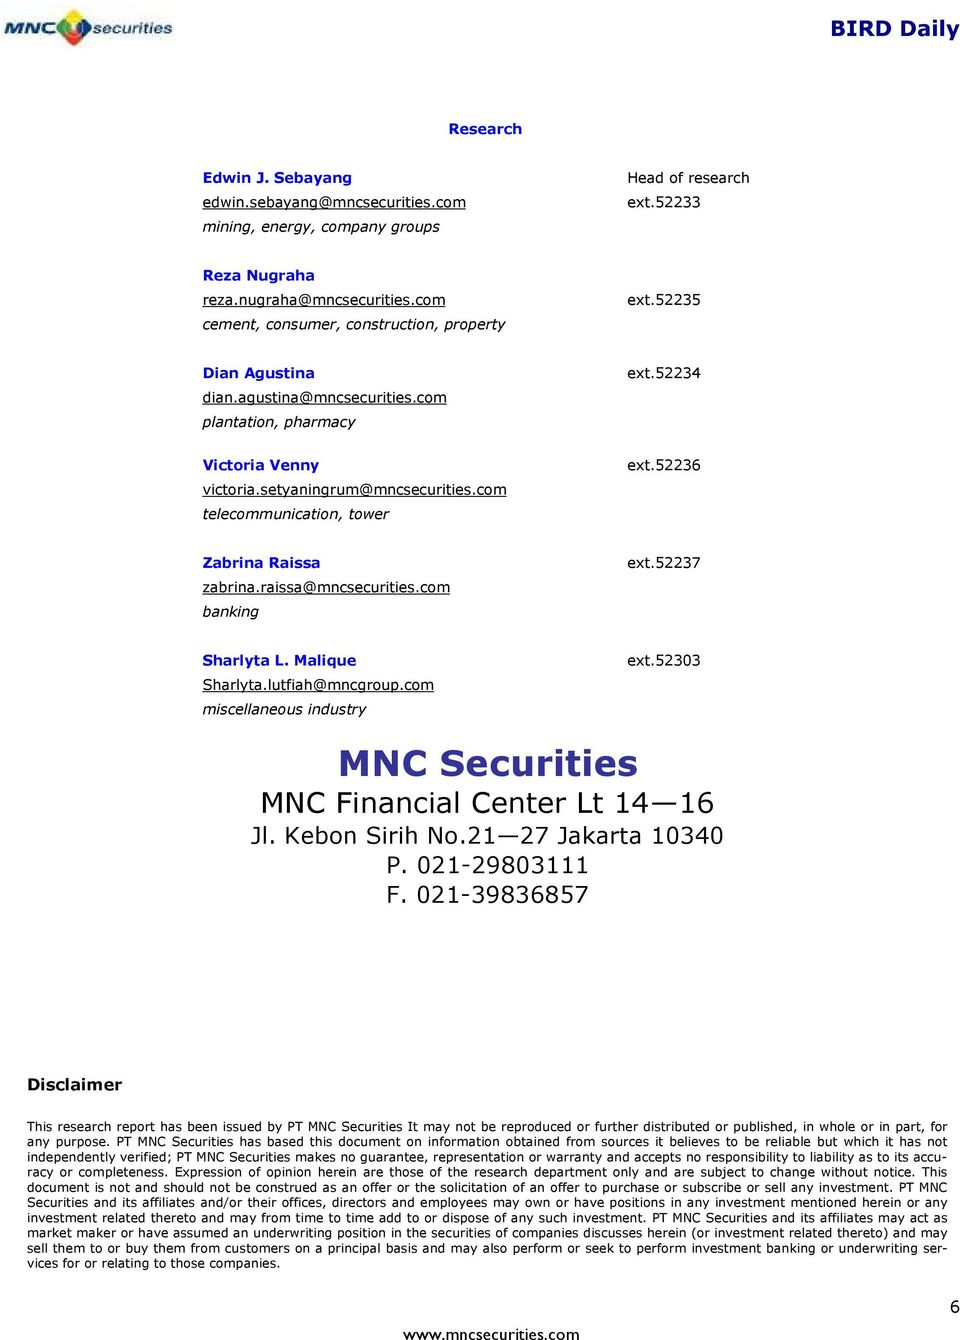 com telecommunication, tower ext.52236 Zabrina Raissa zabrina.raissa@mncsecurities.com banking ext.52237 Sharlyta L. Malique Sharlyta.lutfiah@mncgroup.com miscellaneous industry ext.